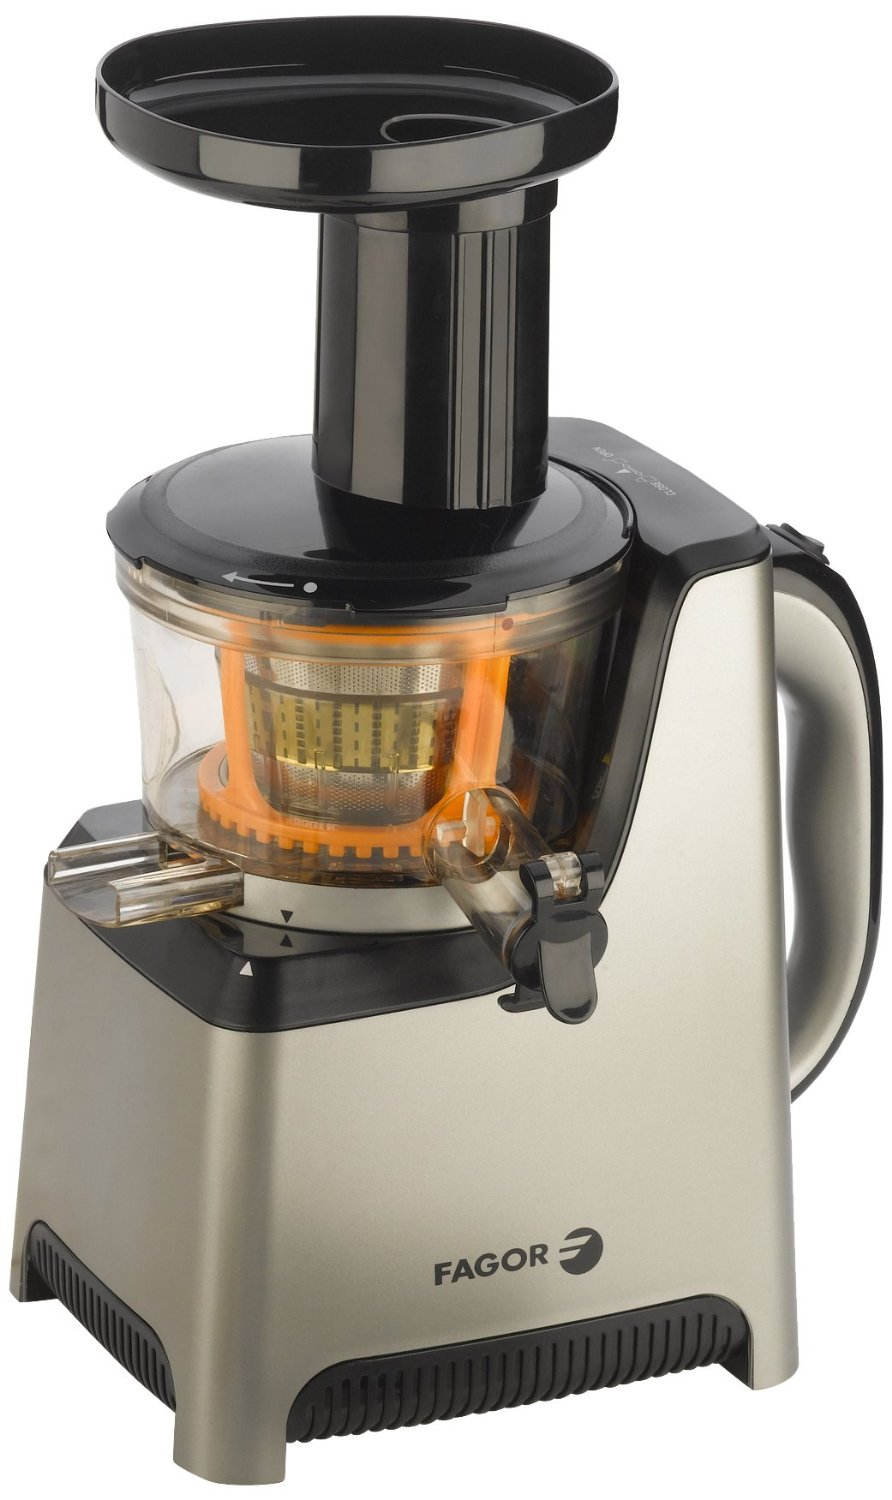 NDB-Fagor 670041910 Platino Plus Slow Juicer and Sorbet Maker